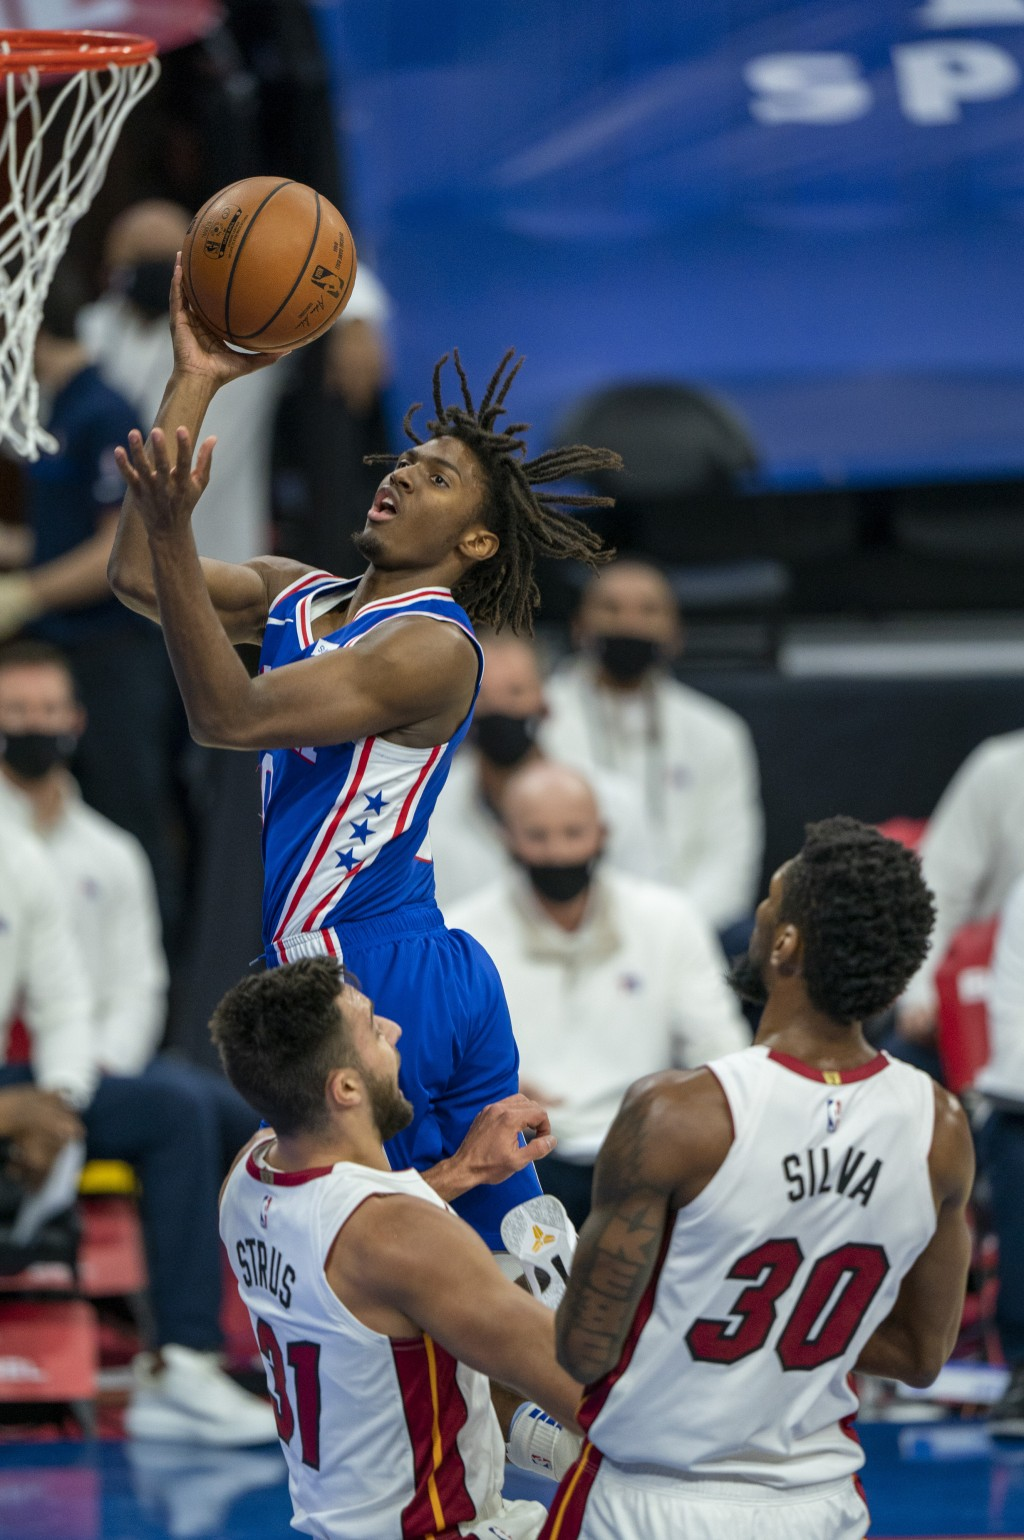 Philadelphia 76ers' Tyrese Maxey goes up for the shot as he is fouled by Miami Heat's Chris Silva, right, and runs into Max Strus, left, during the fi...